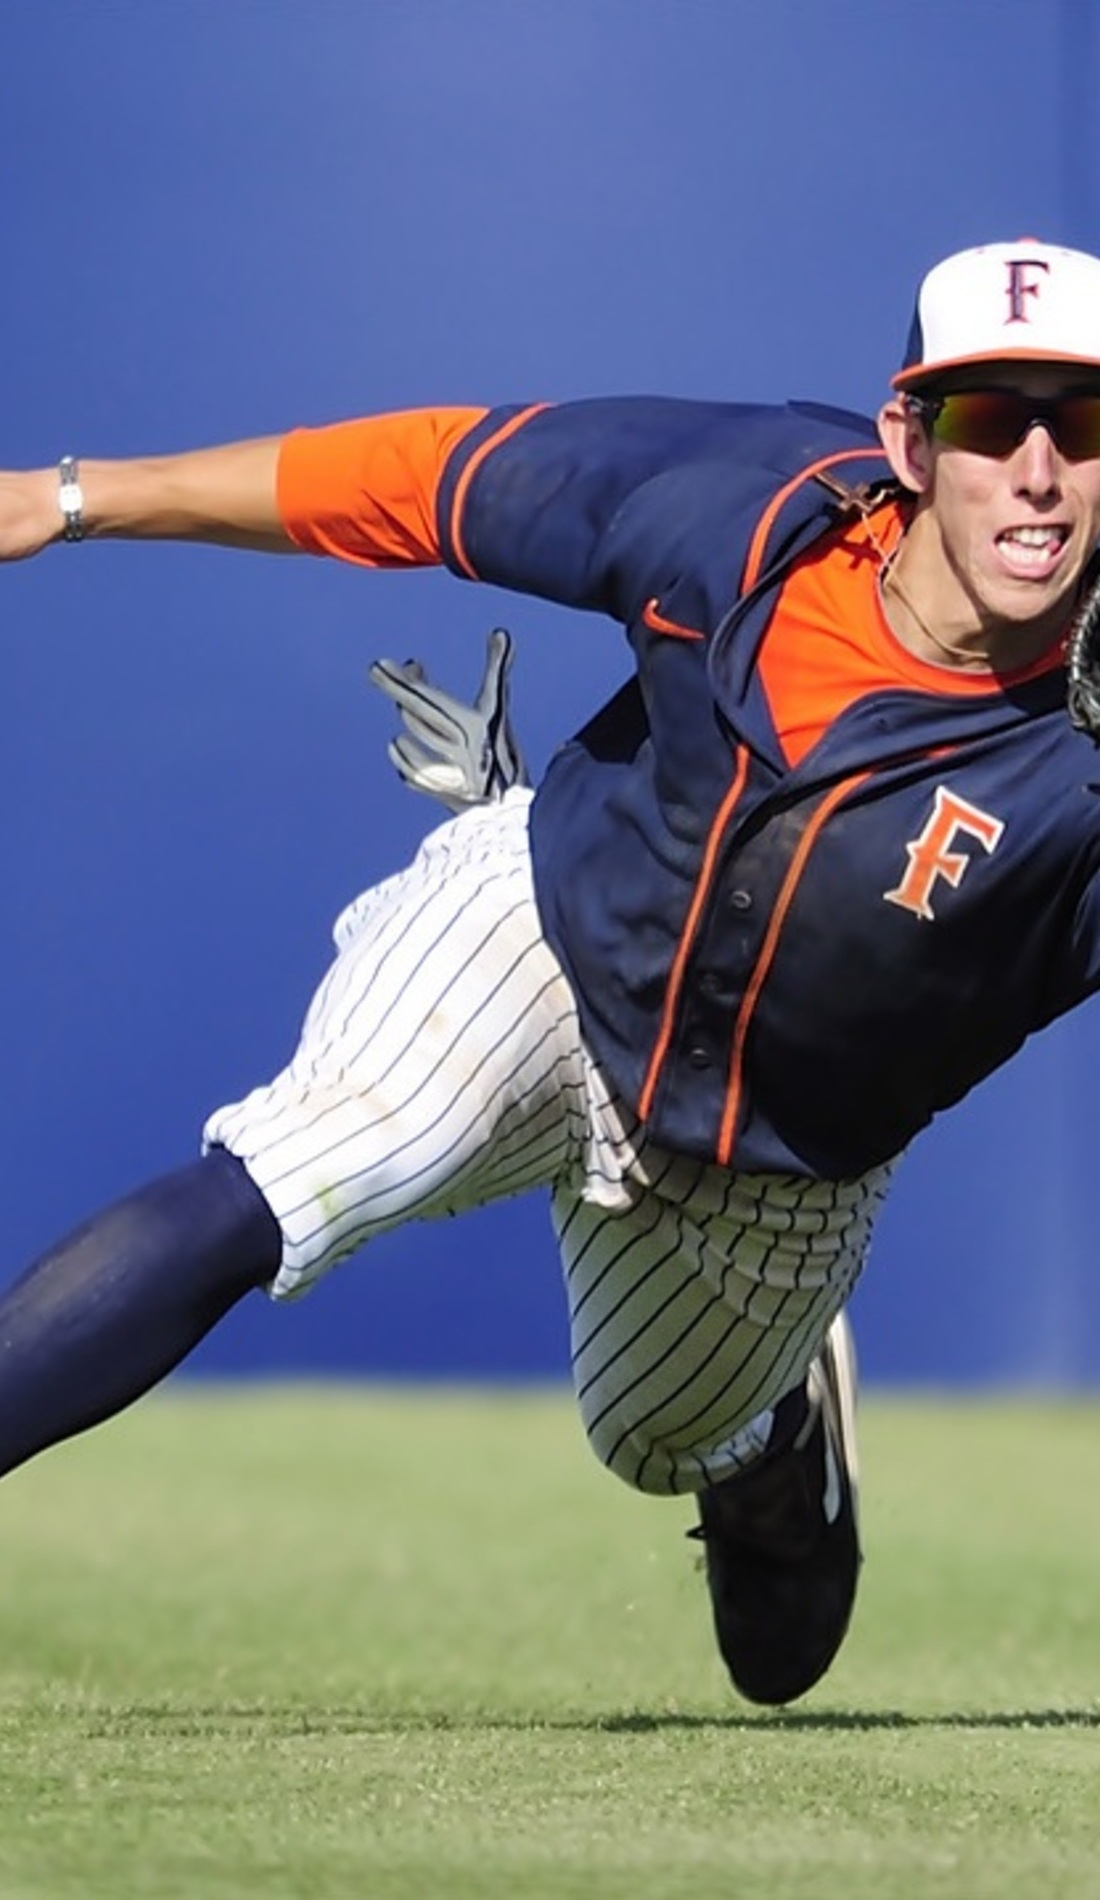 A Cal State Fullerton Titans Baseball live event